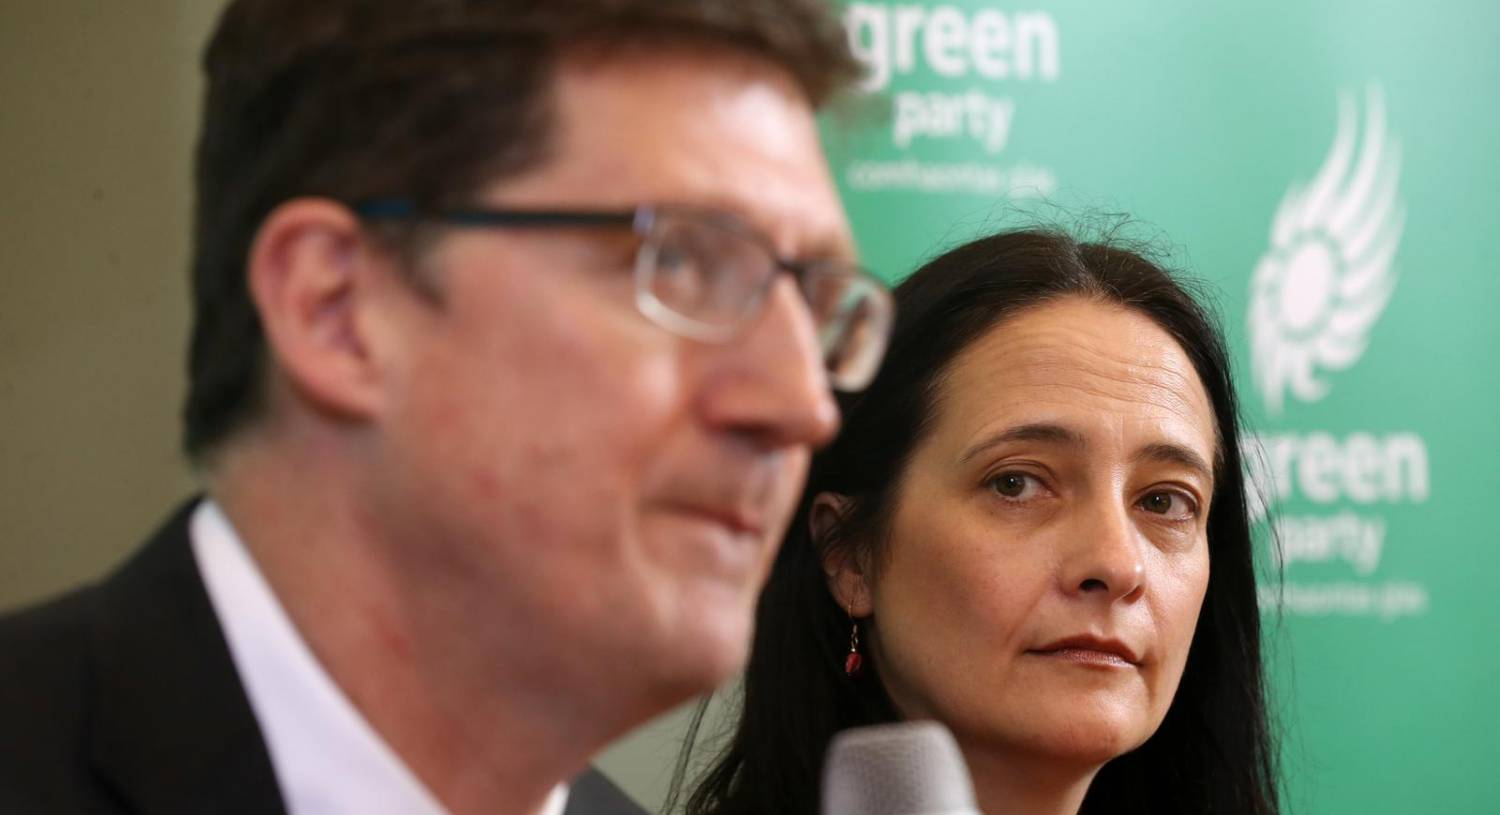 Daniel McConnell: Leadership battle could see Greens snatch defeat from jaws of victory